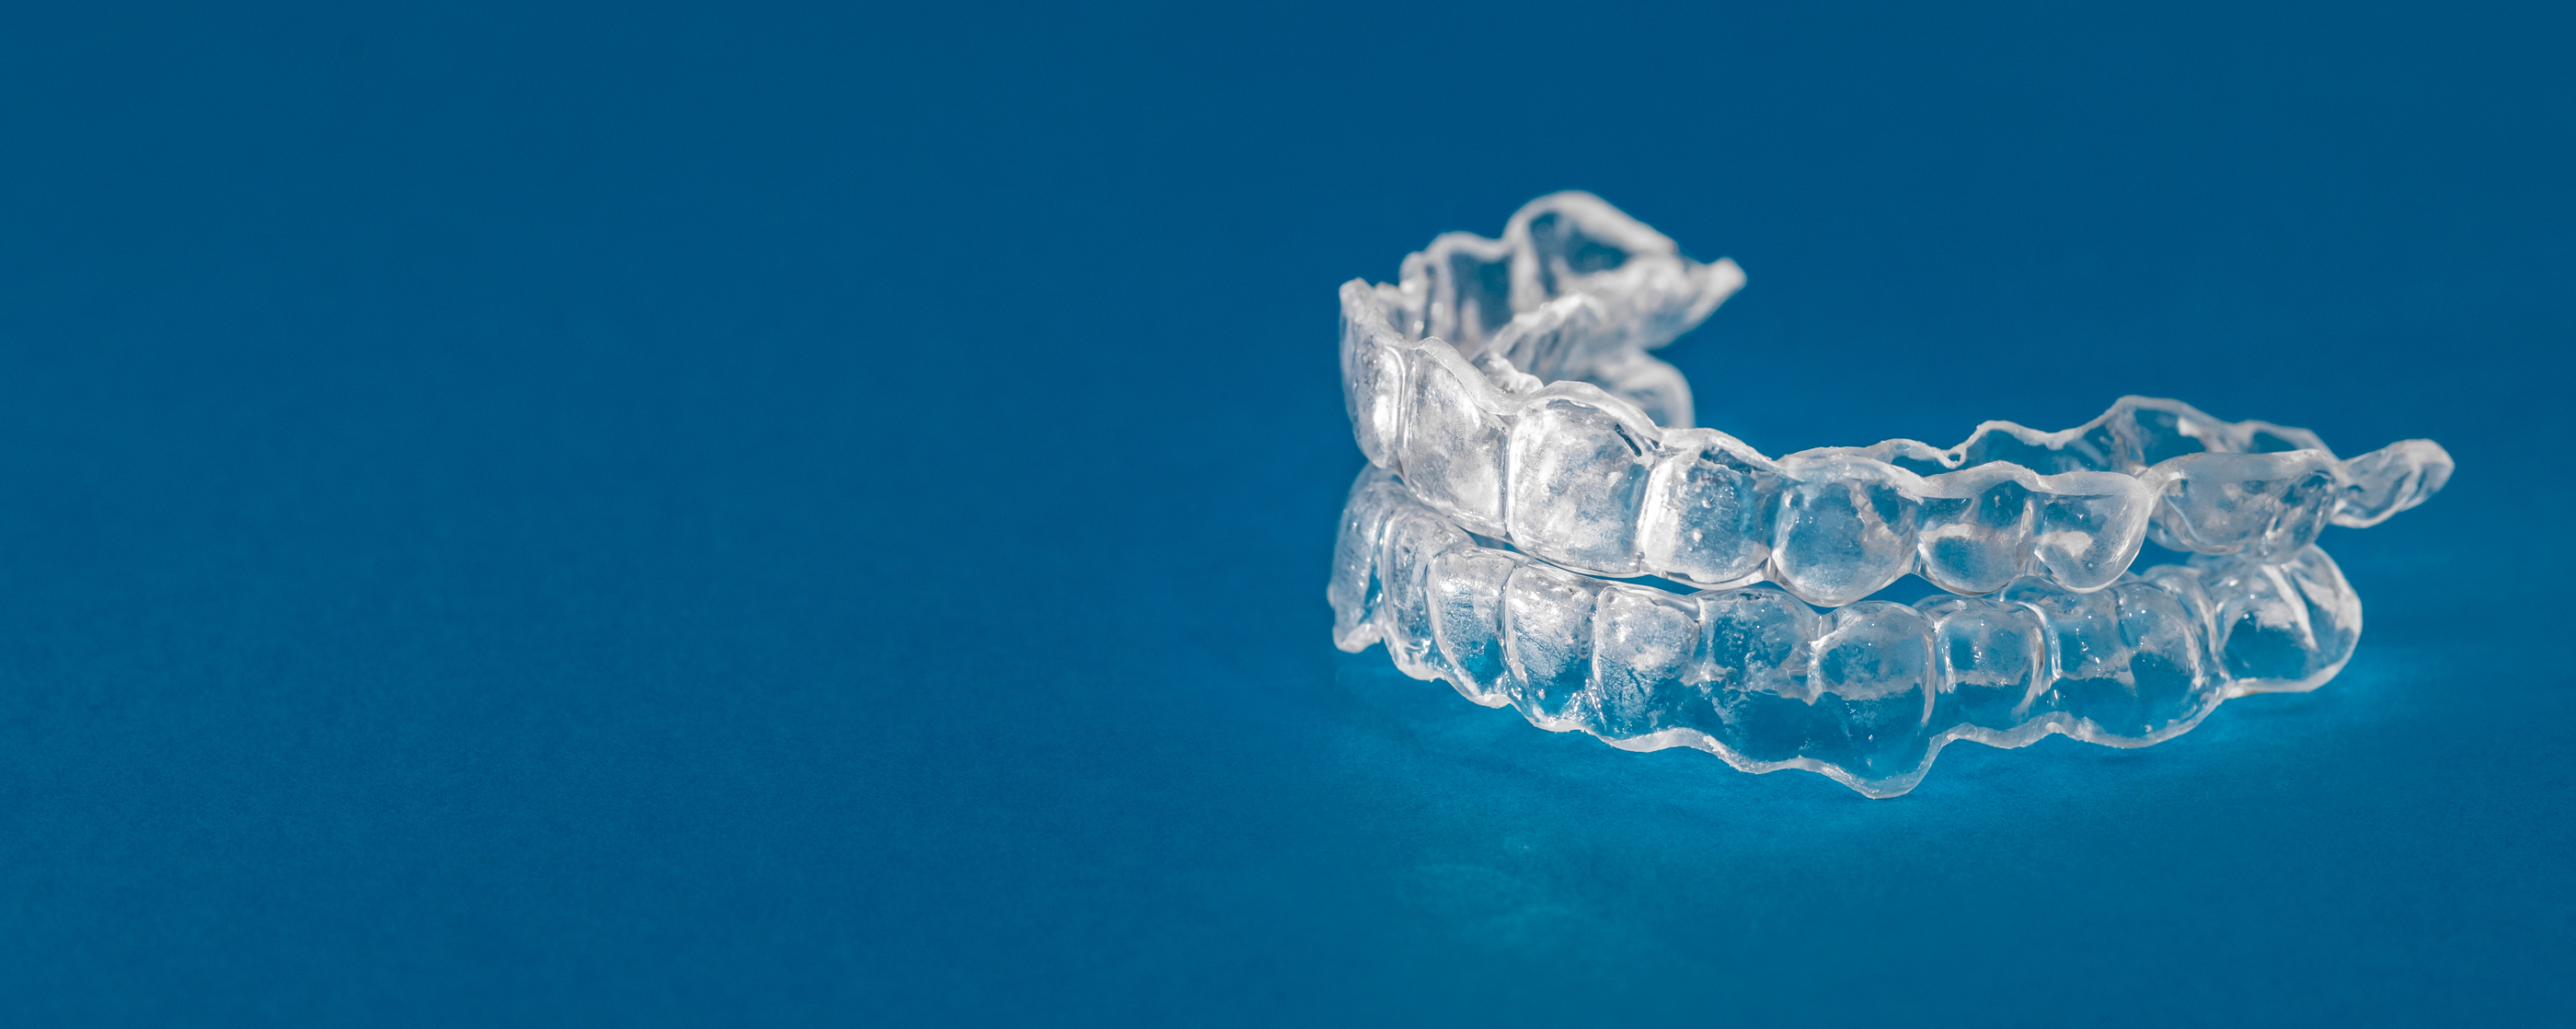 Start the New Year with Invisalign, and Have a Sensational, Straight Smile by Spring!